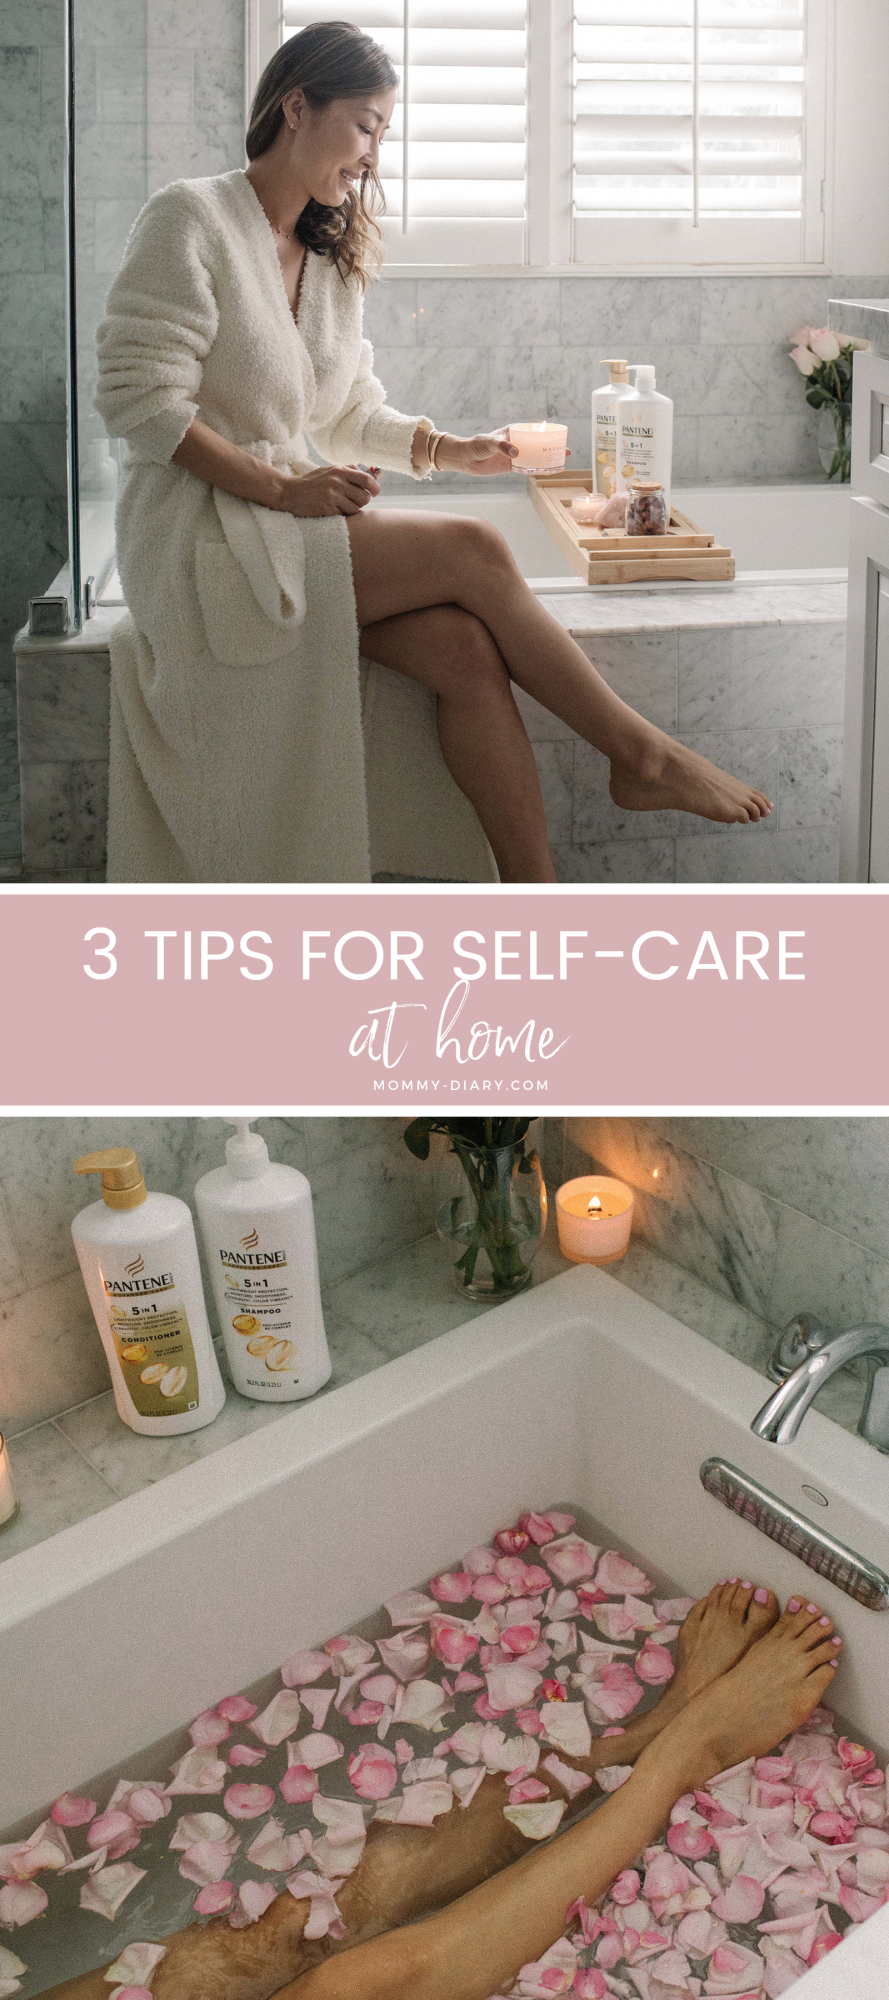 3-tips-for-self-care-at-home